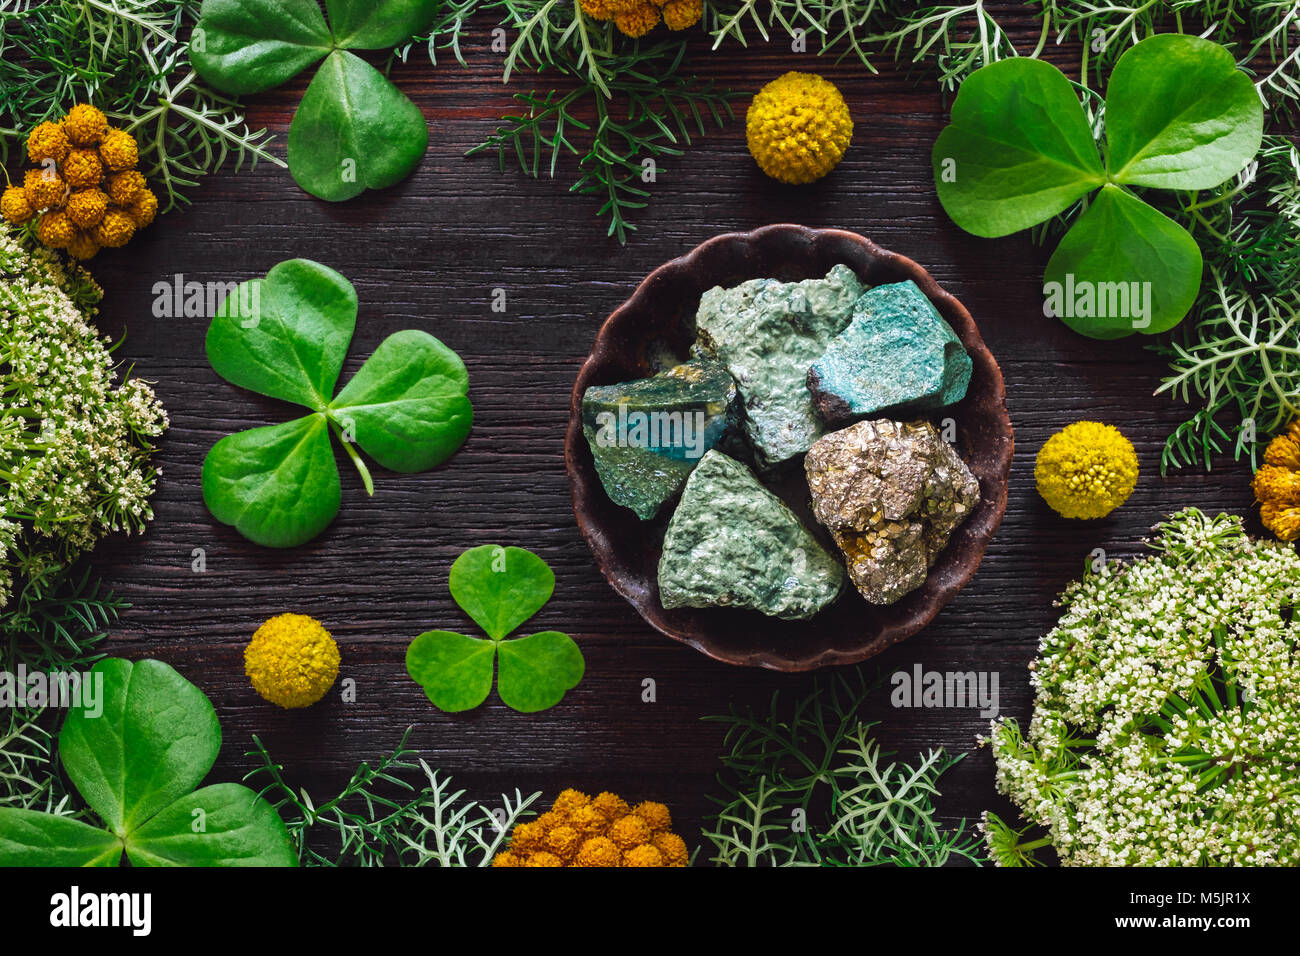 Ceramic Bowl of Green Aventurine and Pyrite with Shamrocks and Mixed Foliage on Dark Table - Stock Image